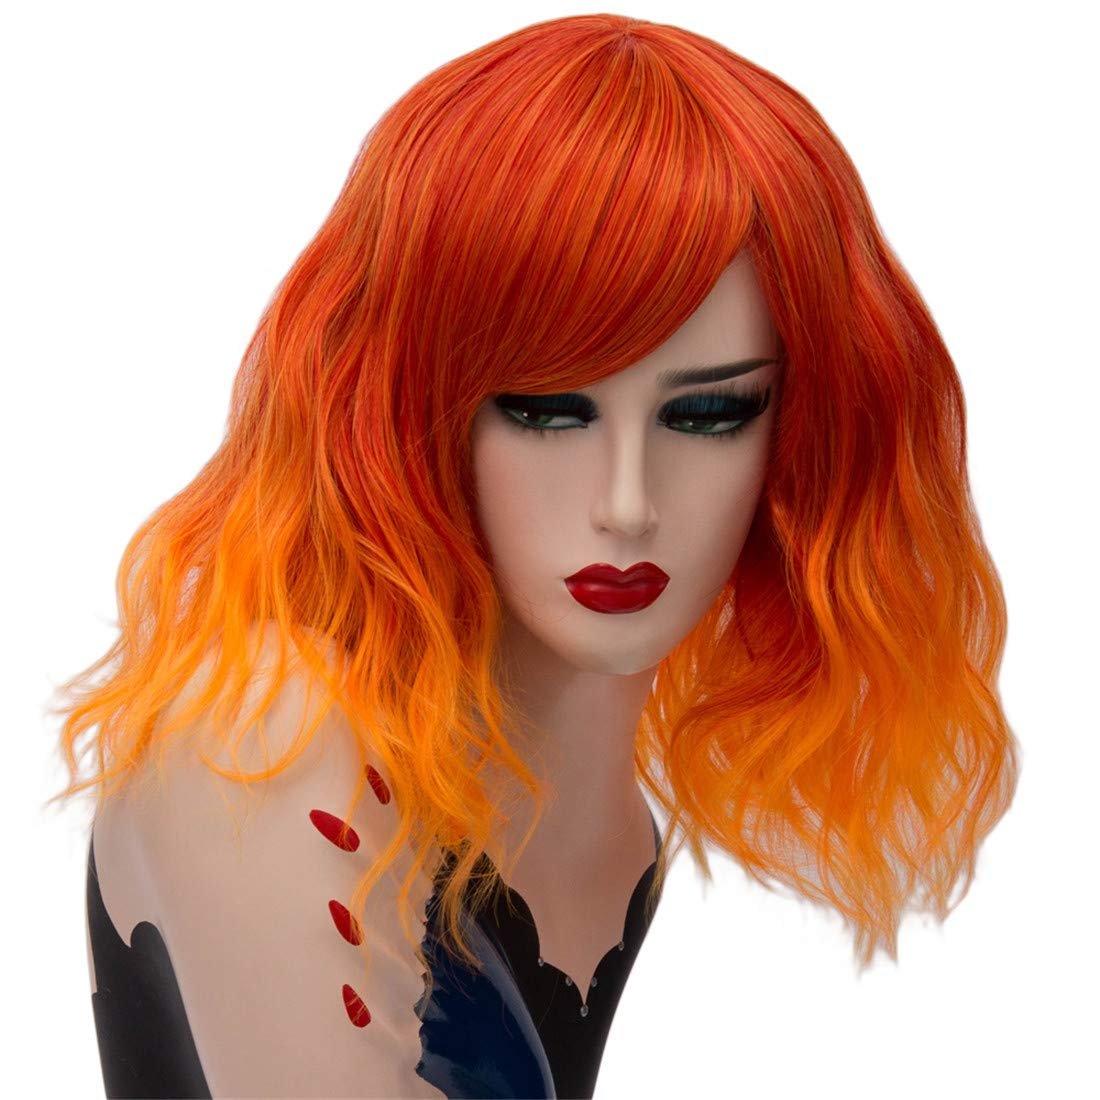 OYIXU Cool 40cm 15.7'' Orange Ombre Highlights Synthetic Women Party Cosplay Fluffy Curly Halloween Short Hair Wig